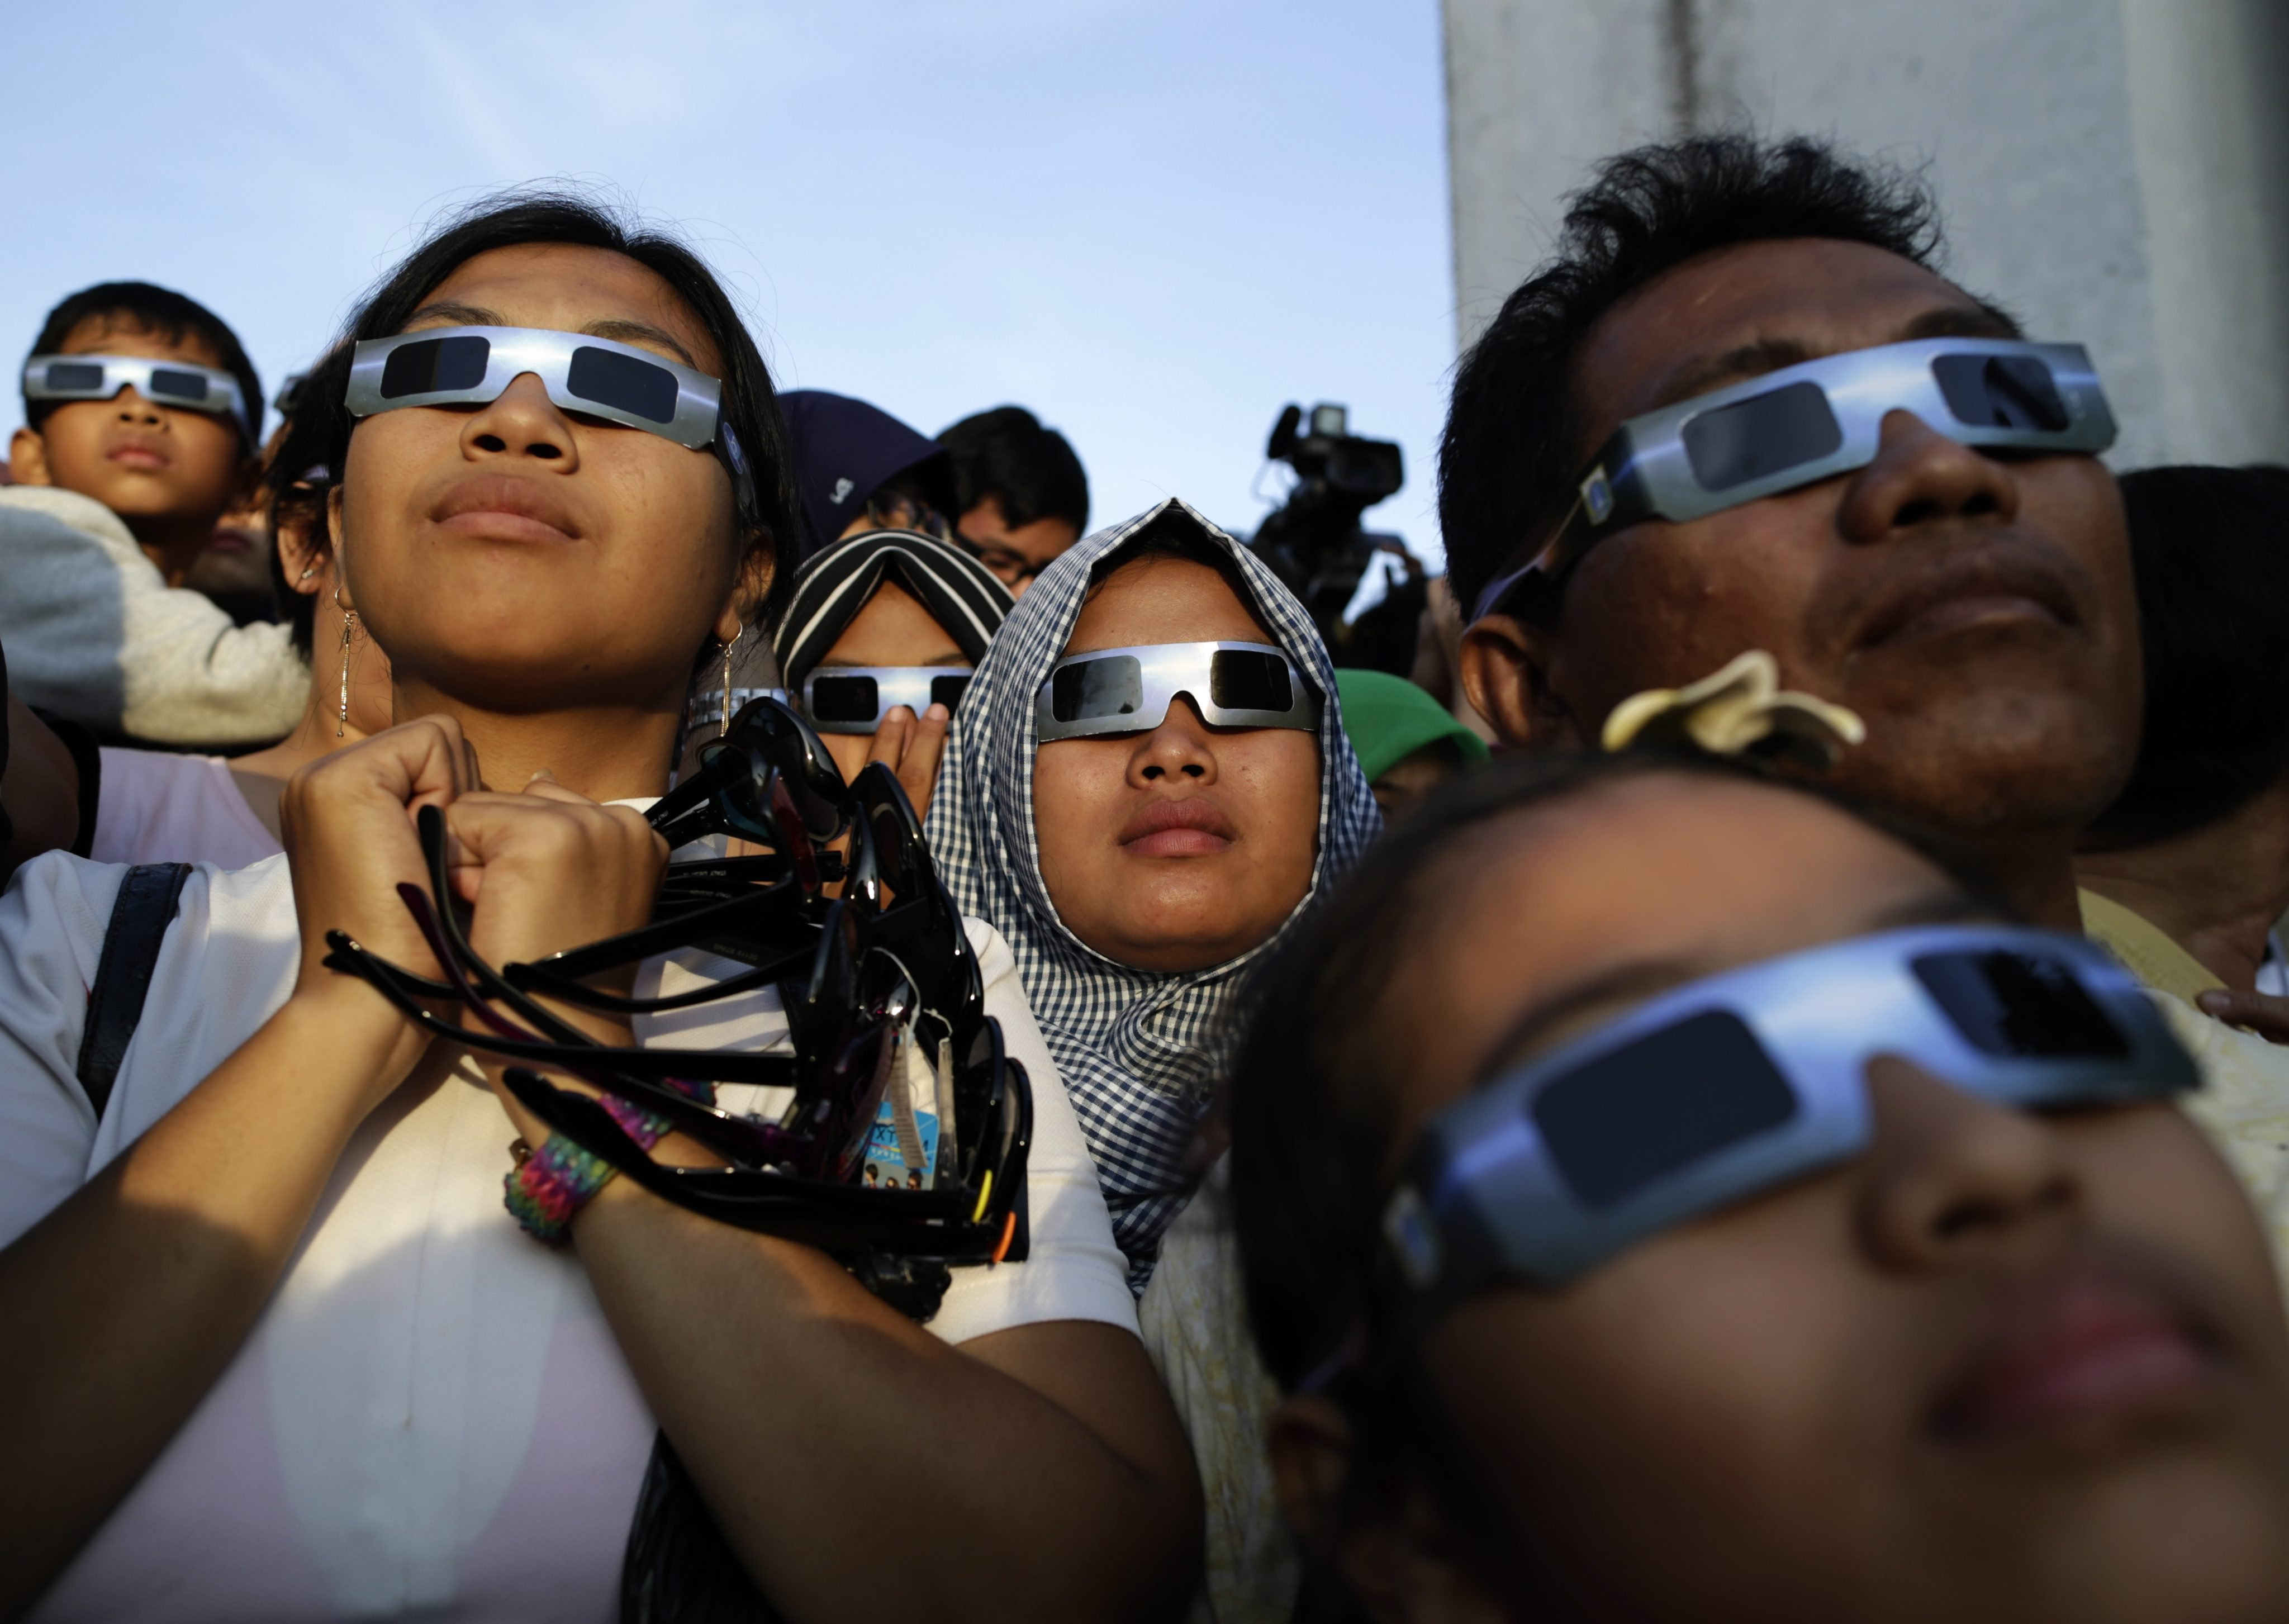 Indonesian residents wear eclipse glasses to watch a solar eclipse outside a planetarium in Jakarta, on March 9.